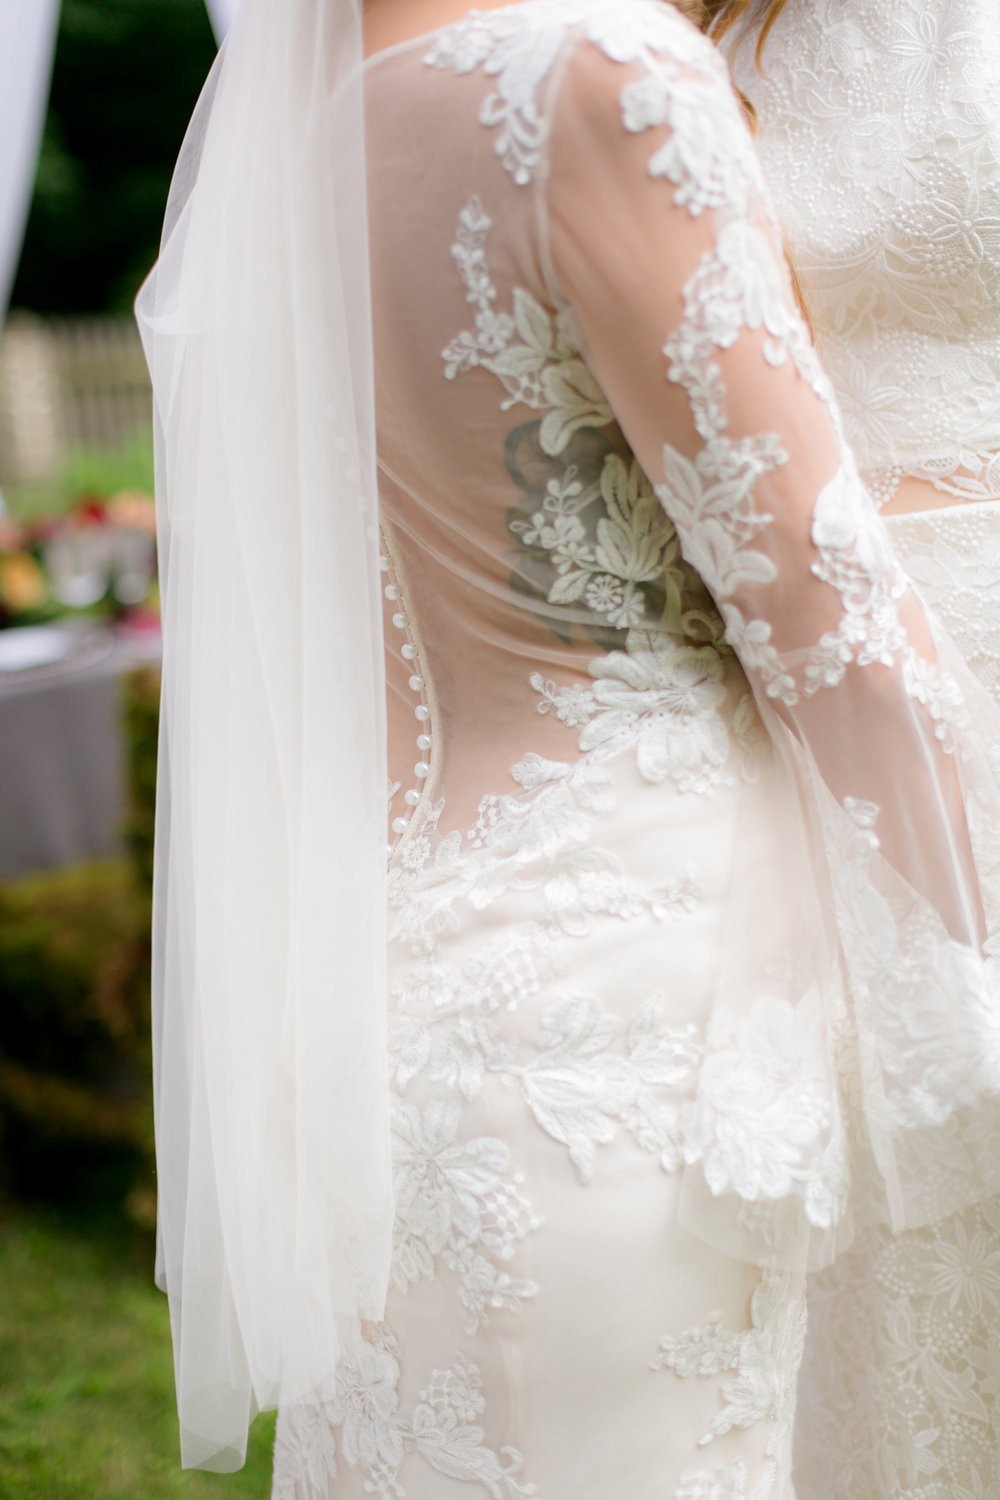 Lace Long Sleeve Wedding Dress - Colchester, Connecticut Wedding Photographer